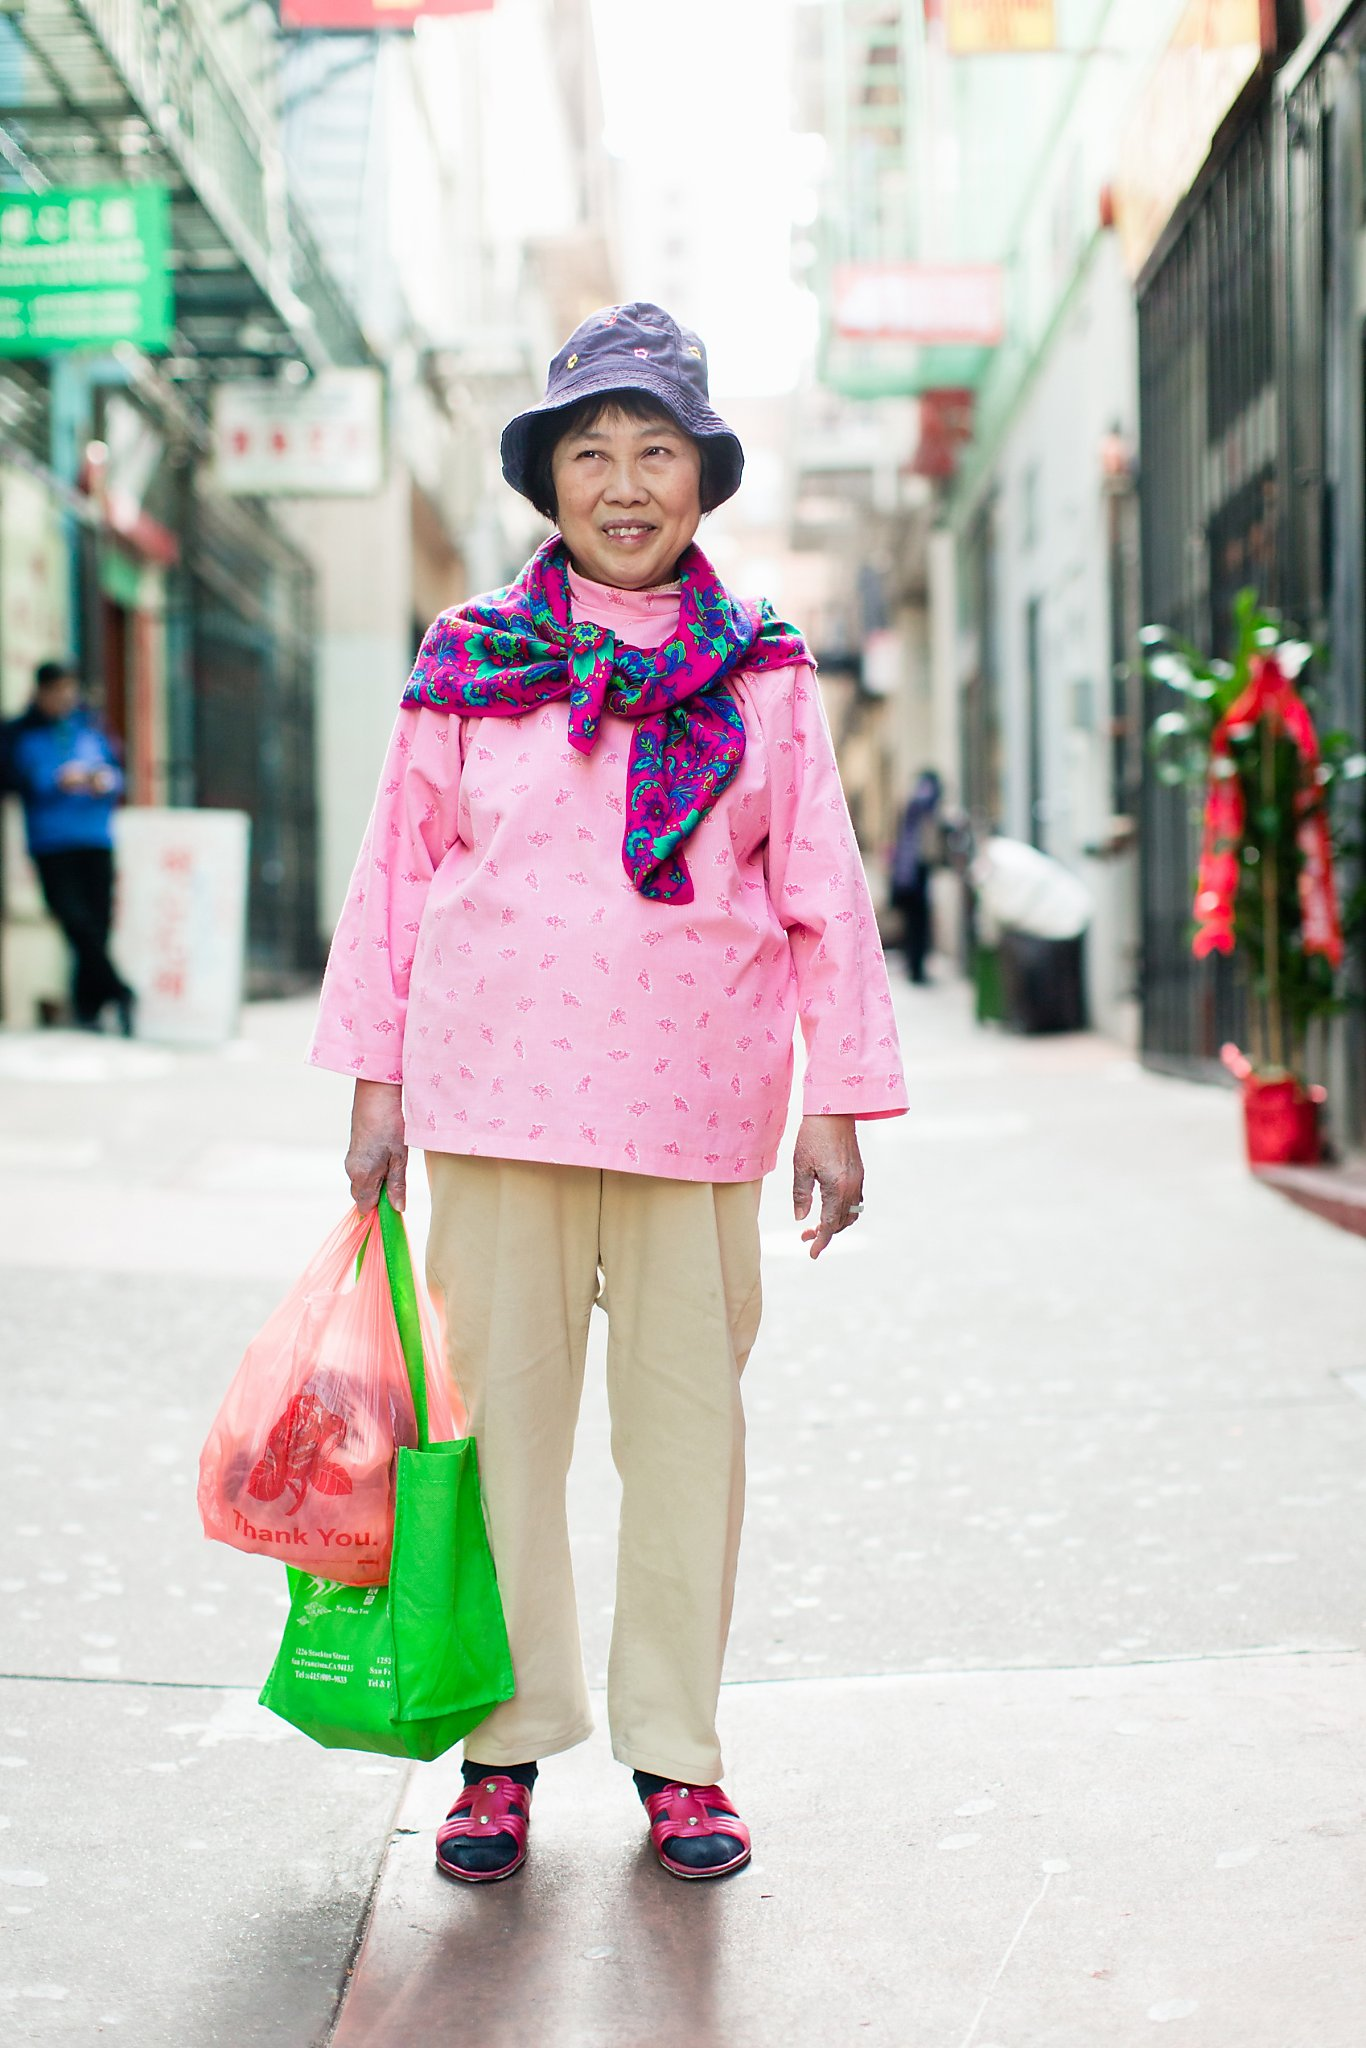 Photos Capture Colorful Unique Street Fashion Of Chinatown Sfgate